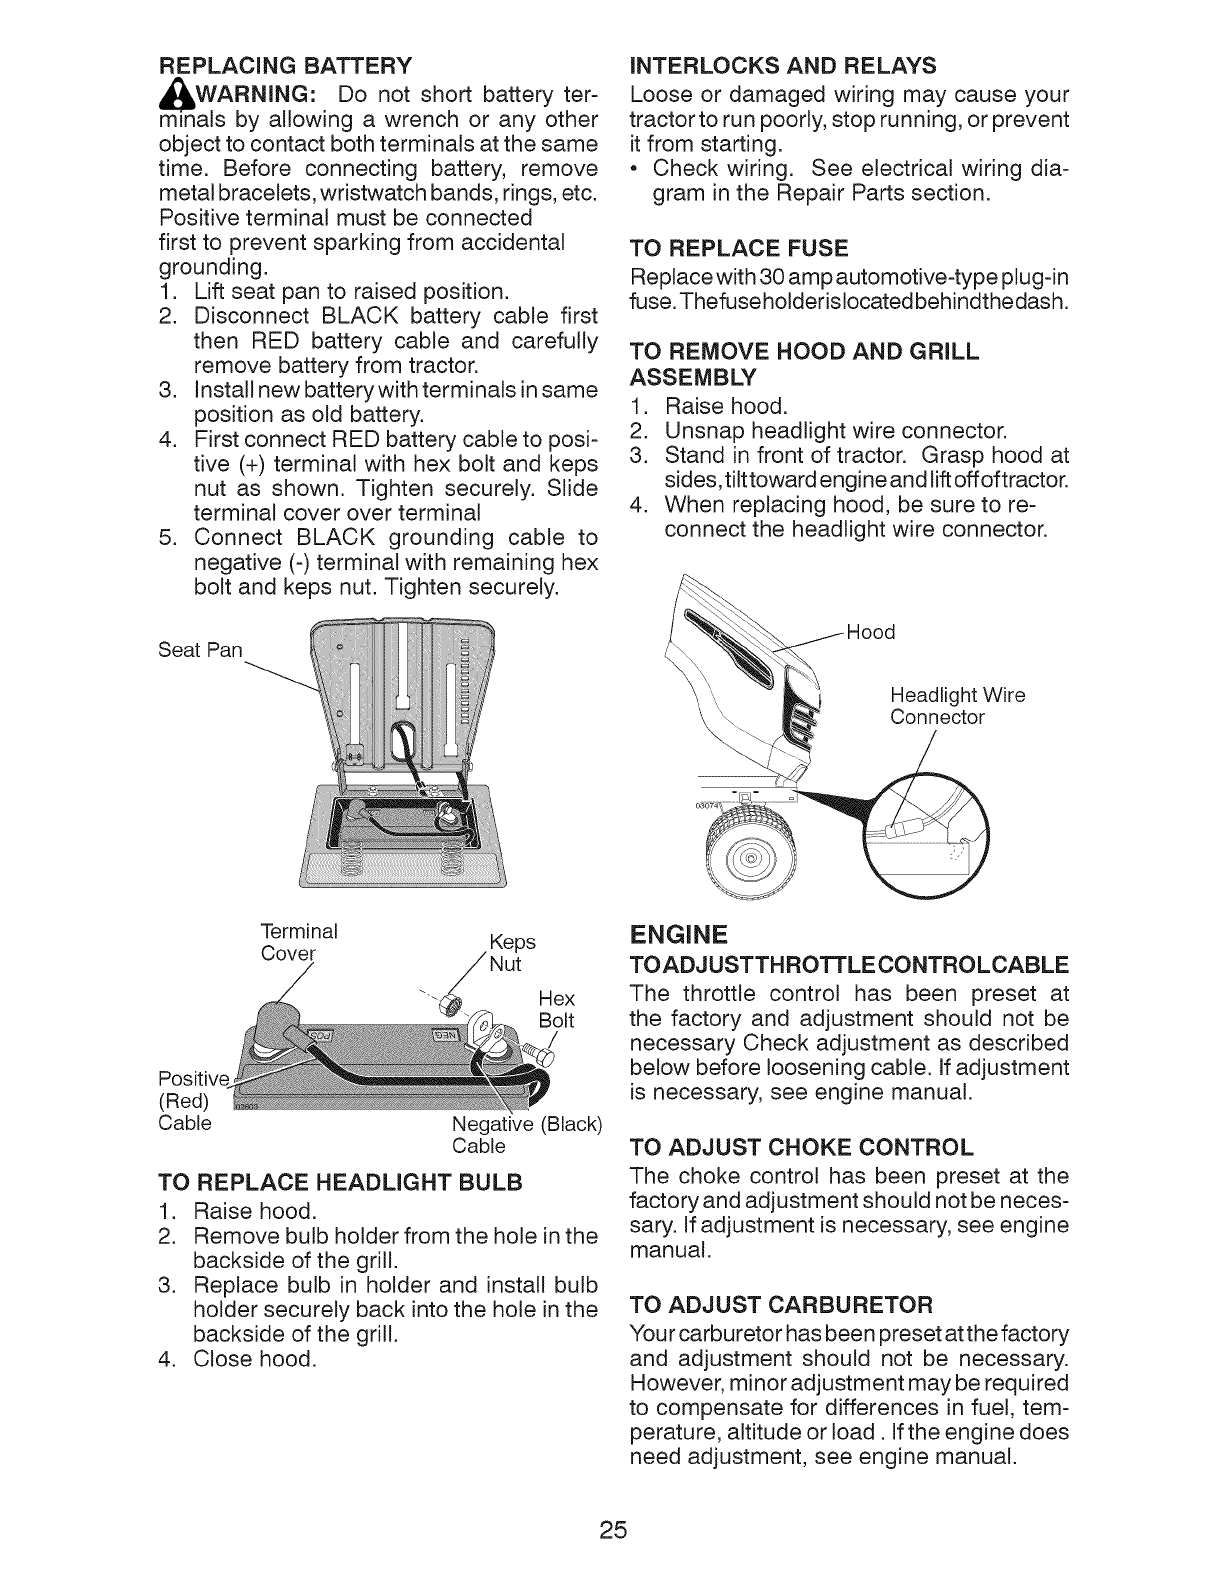 Page 25 of Craftsman Lawn Mower YT 3000 User Guide